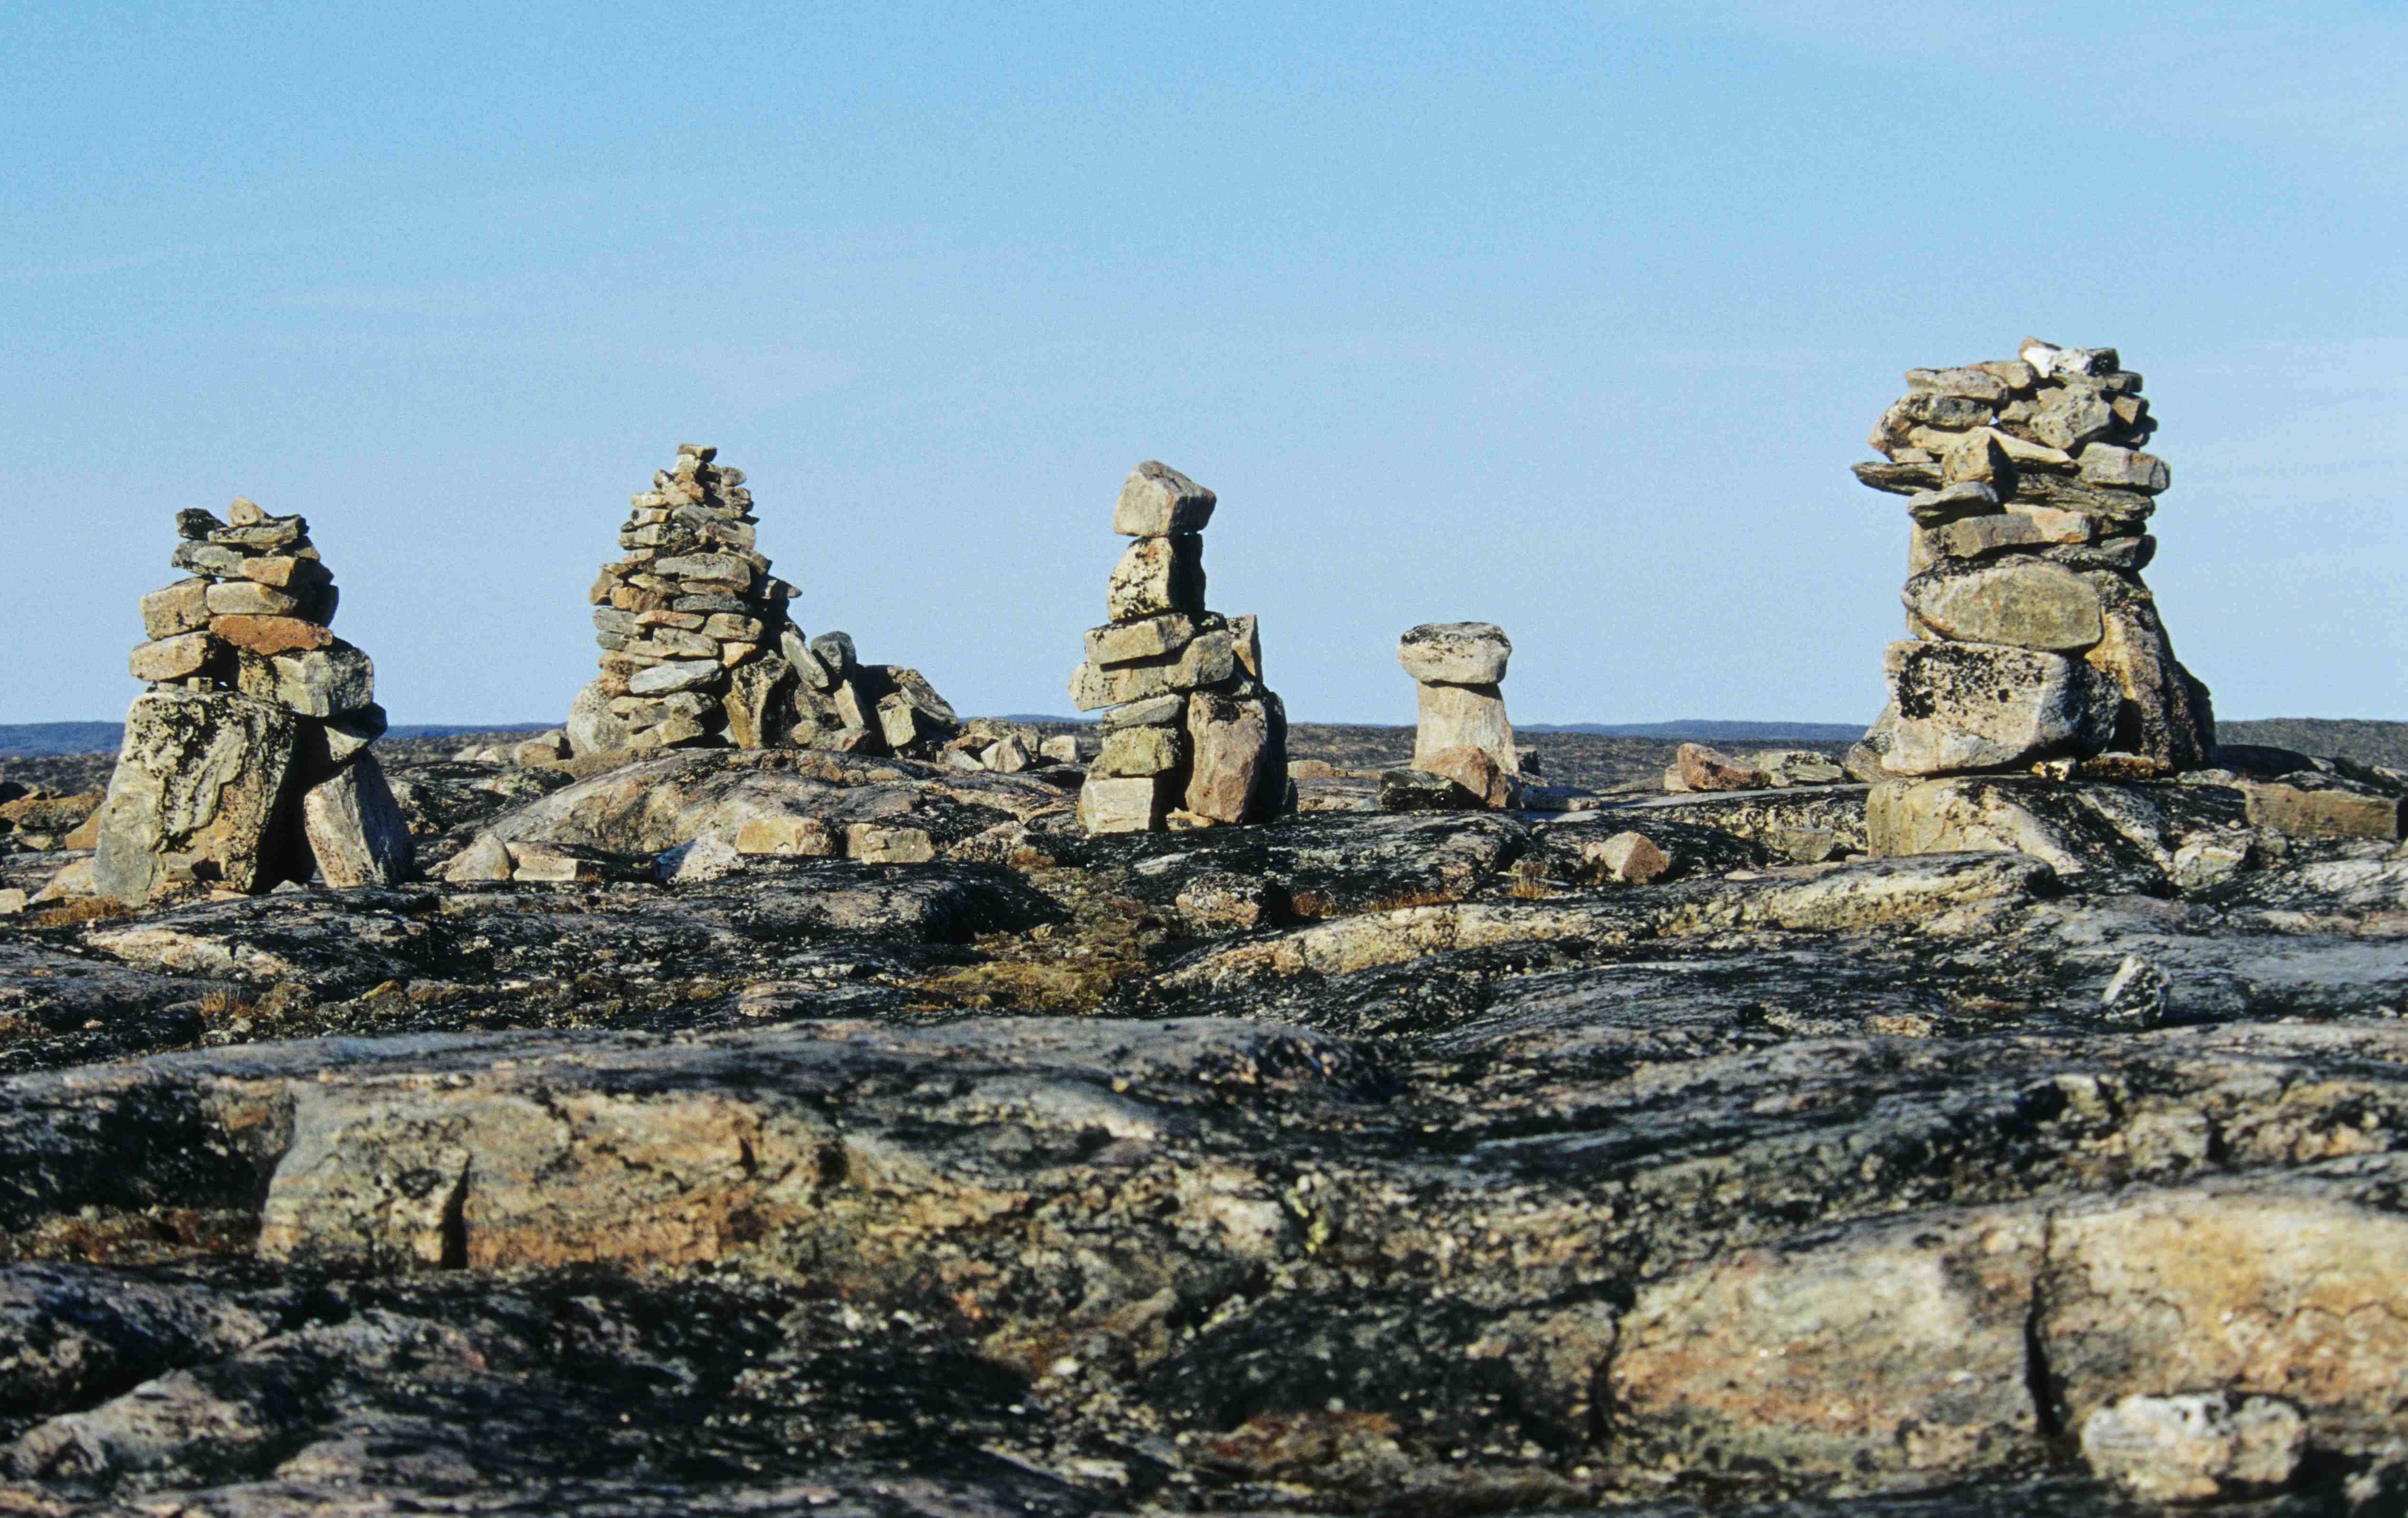 The approximately 100 Inuksuit still standing at Foxe Point, Baffin Island, were constructed as far back as 2,000 years ago. Credit Ansgar Walk.